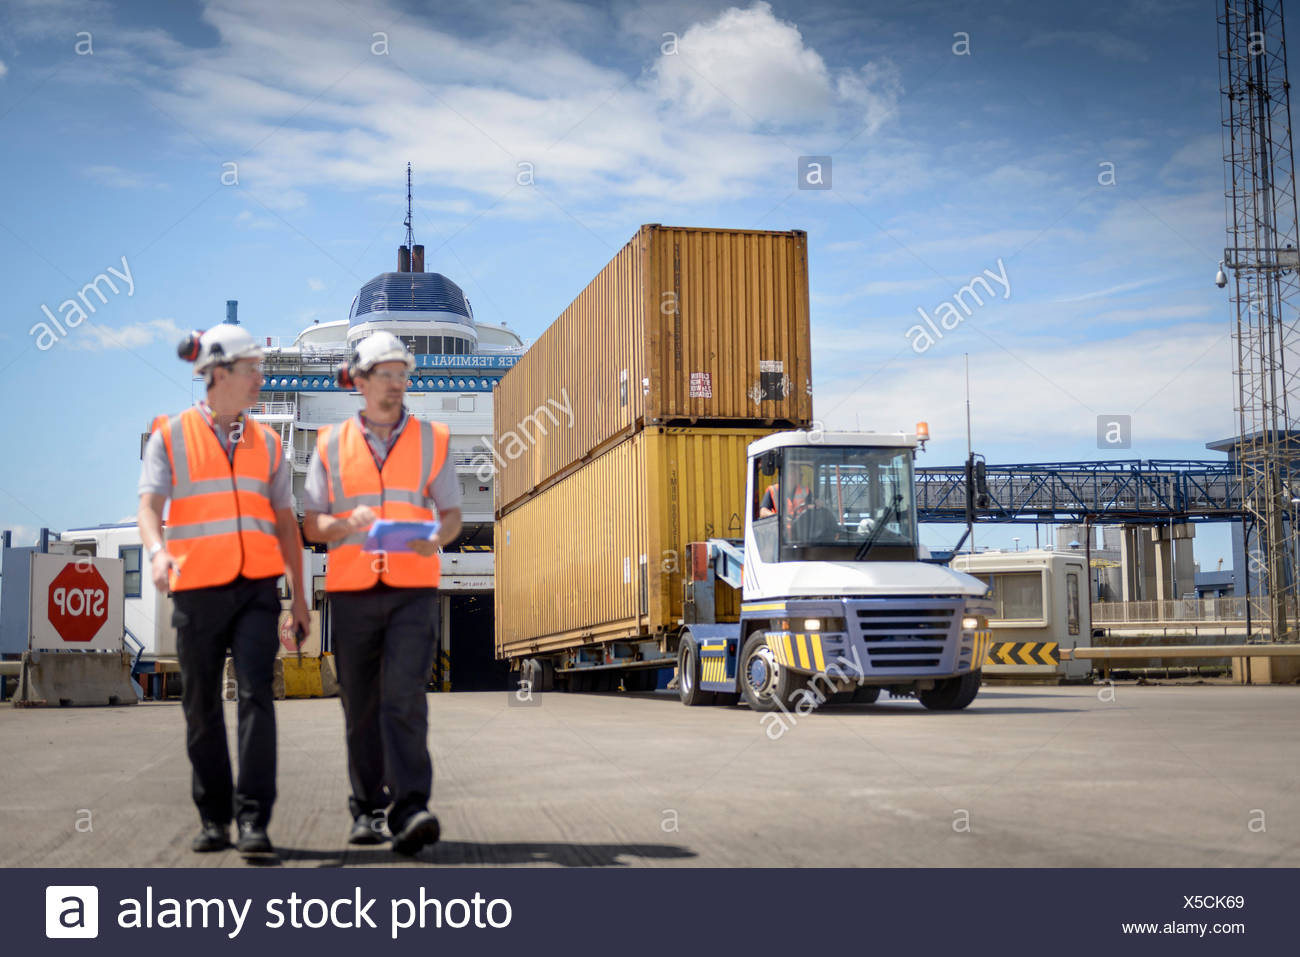 Port workers and truck unloading shipping containers from ship to port - Stock Image